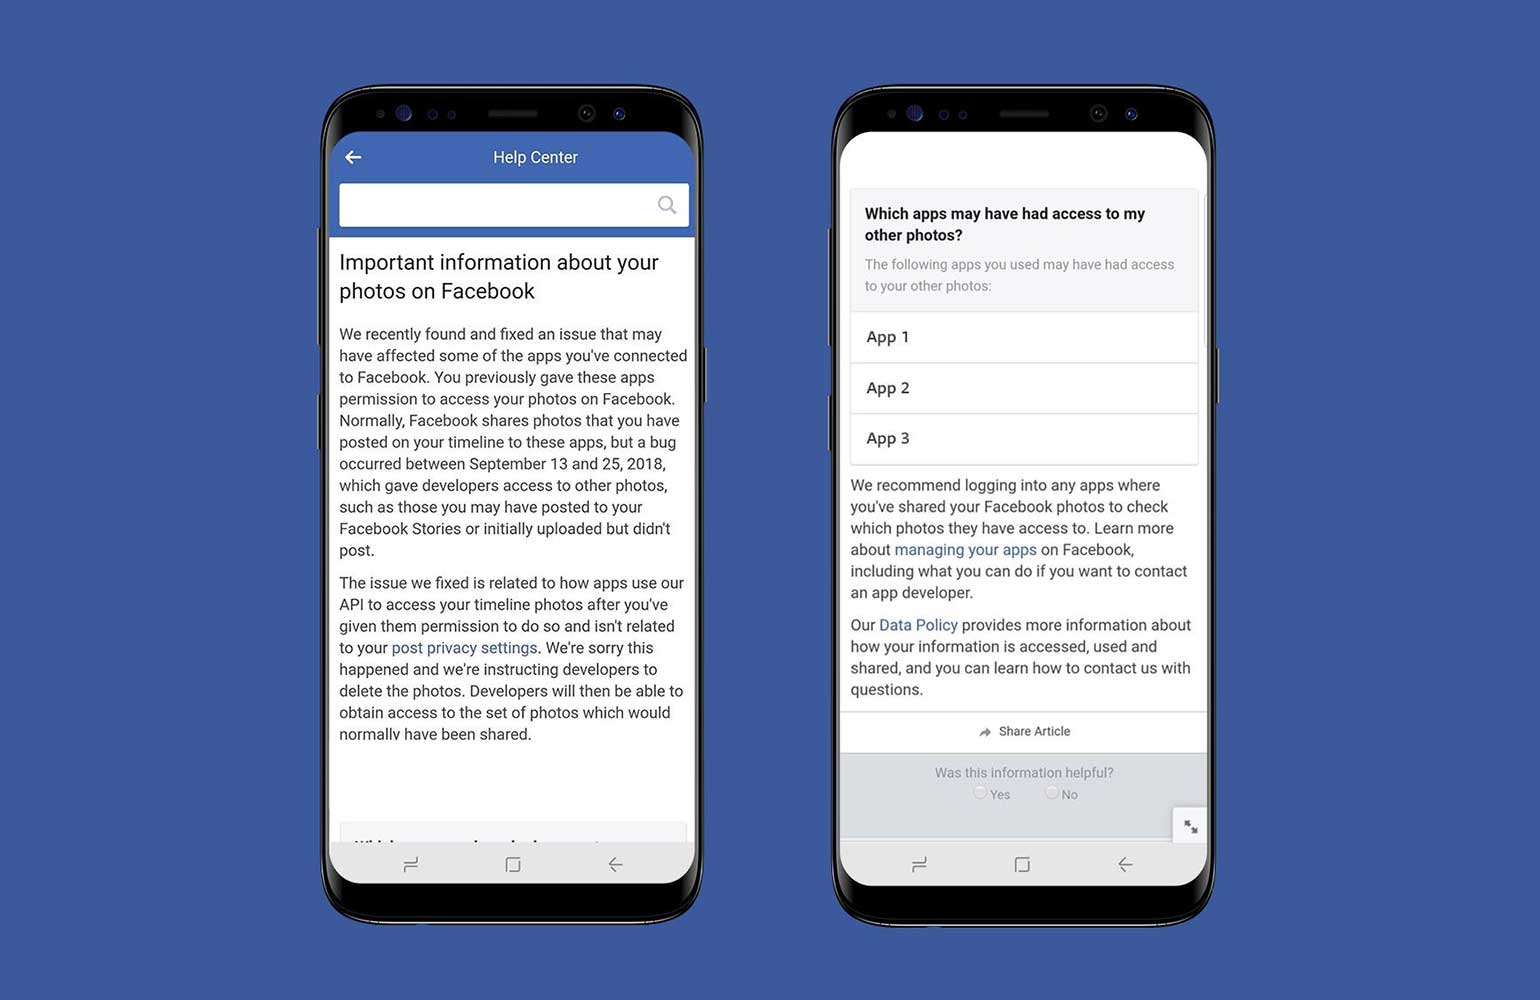 Facebook Photo Bug Notification - New Facebook bug exposed private photos of 6.8 millions of users